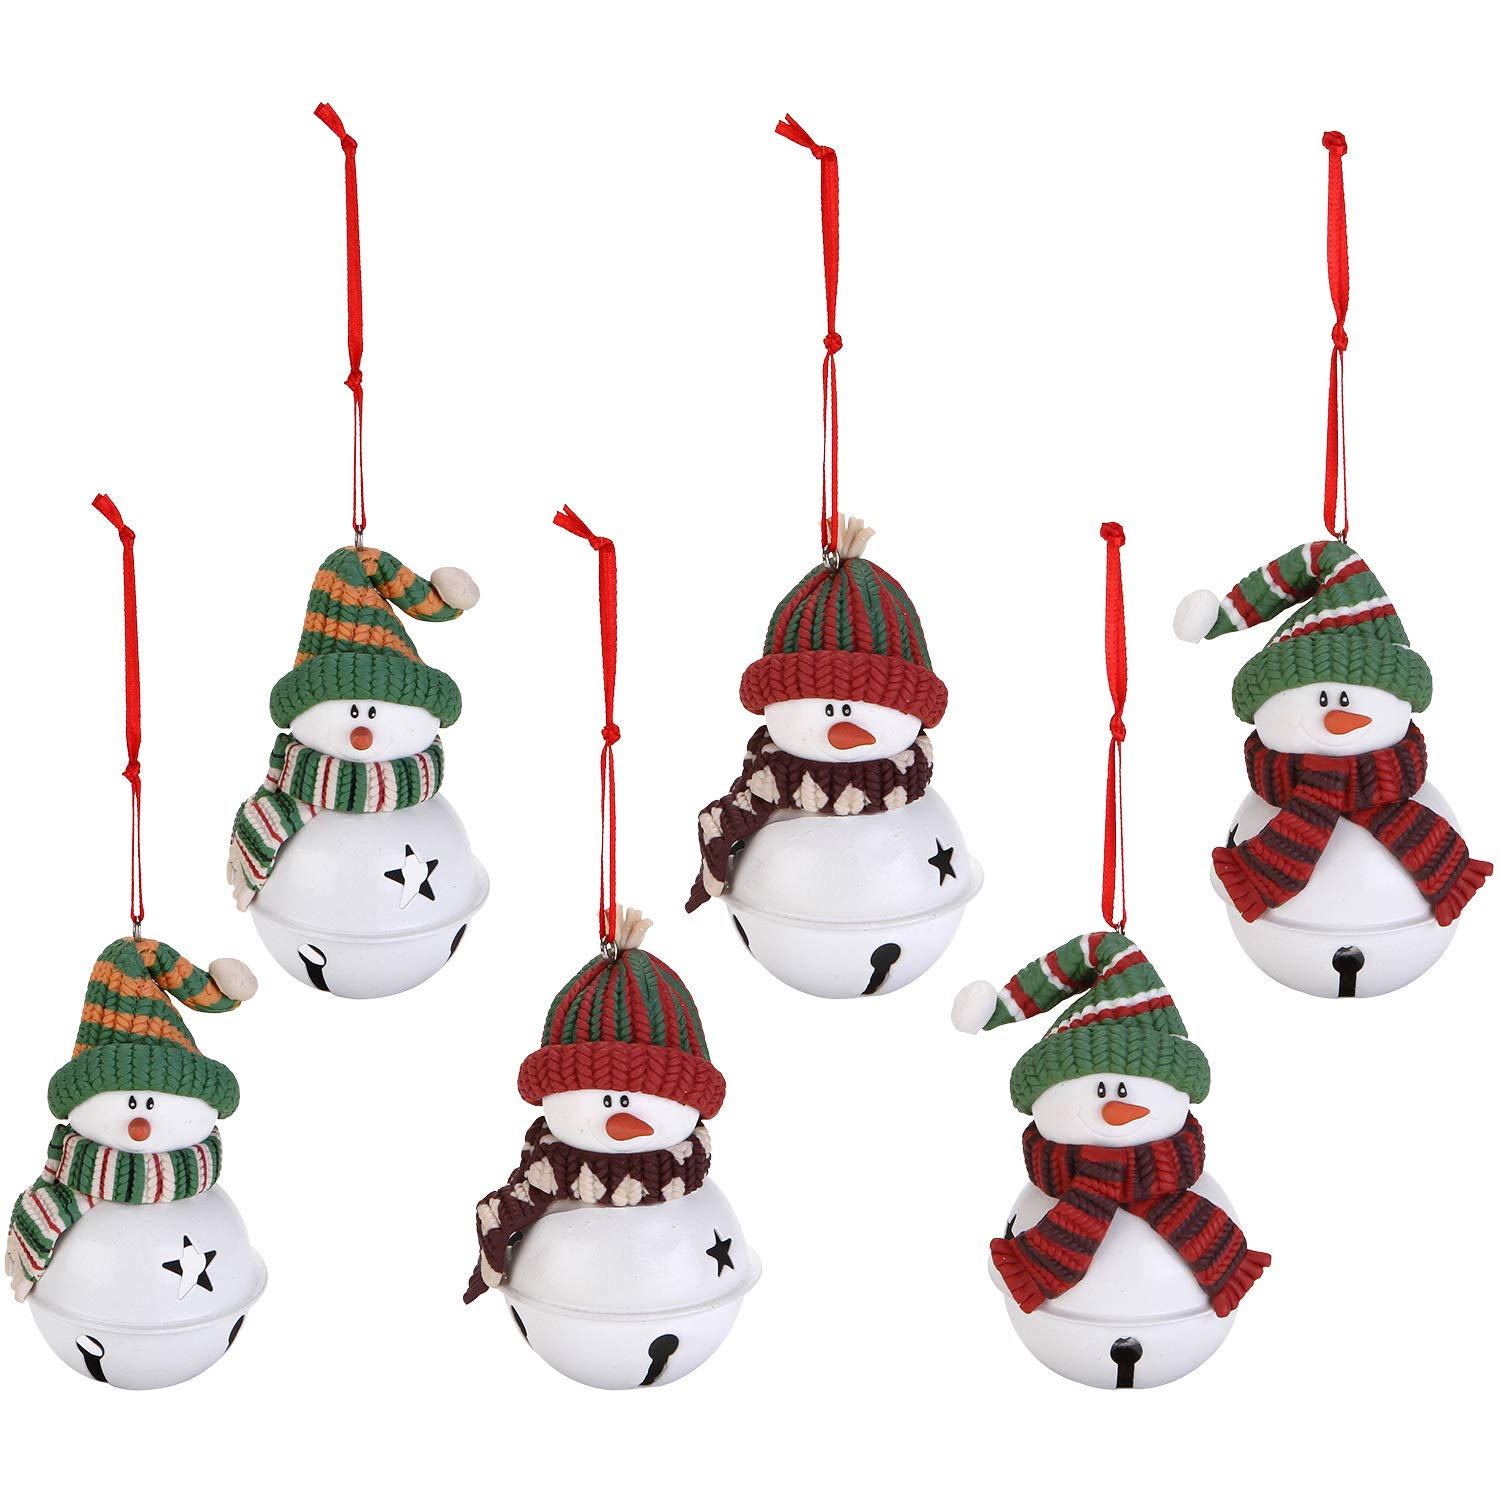 Sea Team Assorted Clay Figurine Jingle Bell Ornaments Traditional Snowman, Santa Clause, Reindeer Doll Hanging Charms Christmas Tree Ornament Holiday Decorations (6 Piece) ST-CLAYDOLL002-Santa